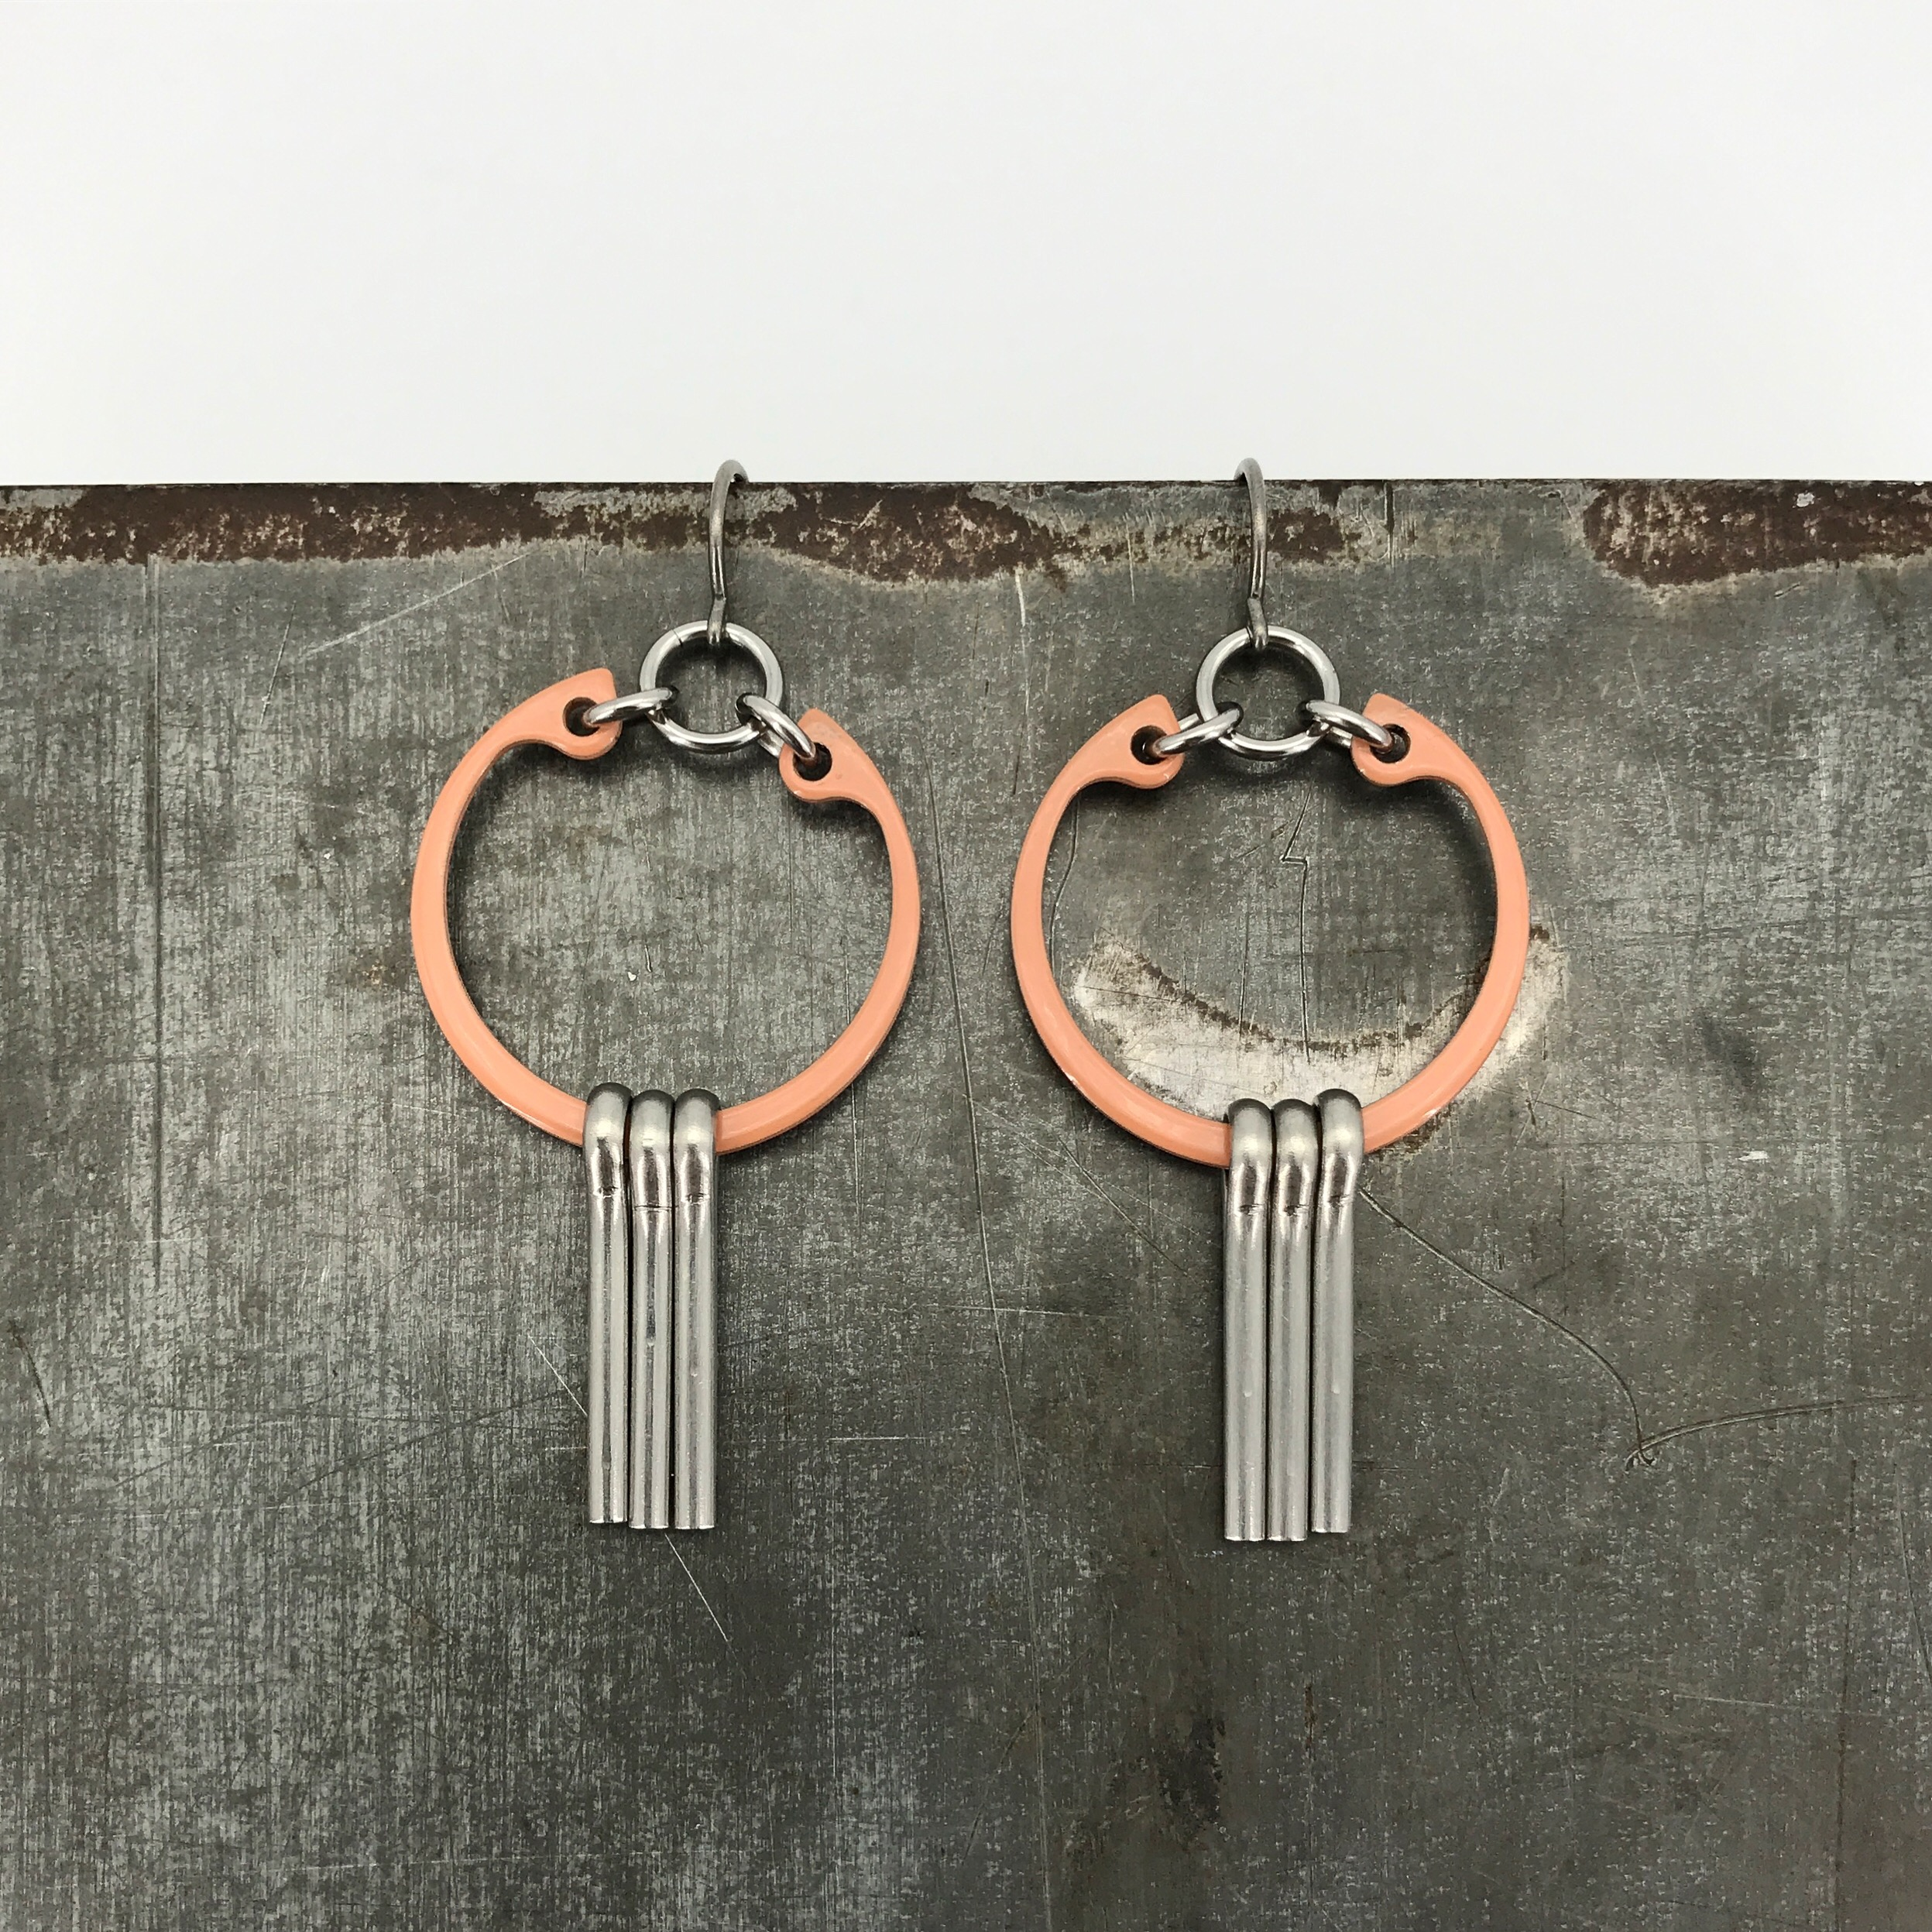 Centro earrings, niobium ear wire, sienna powder coated steel rings, and stainless steel pins, $50